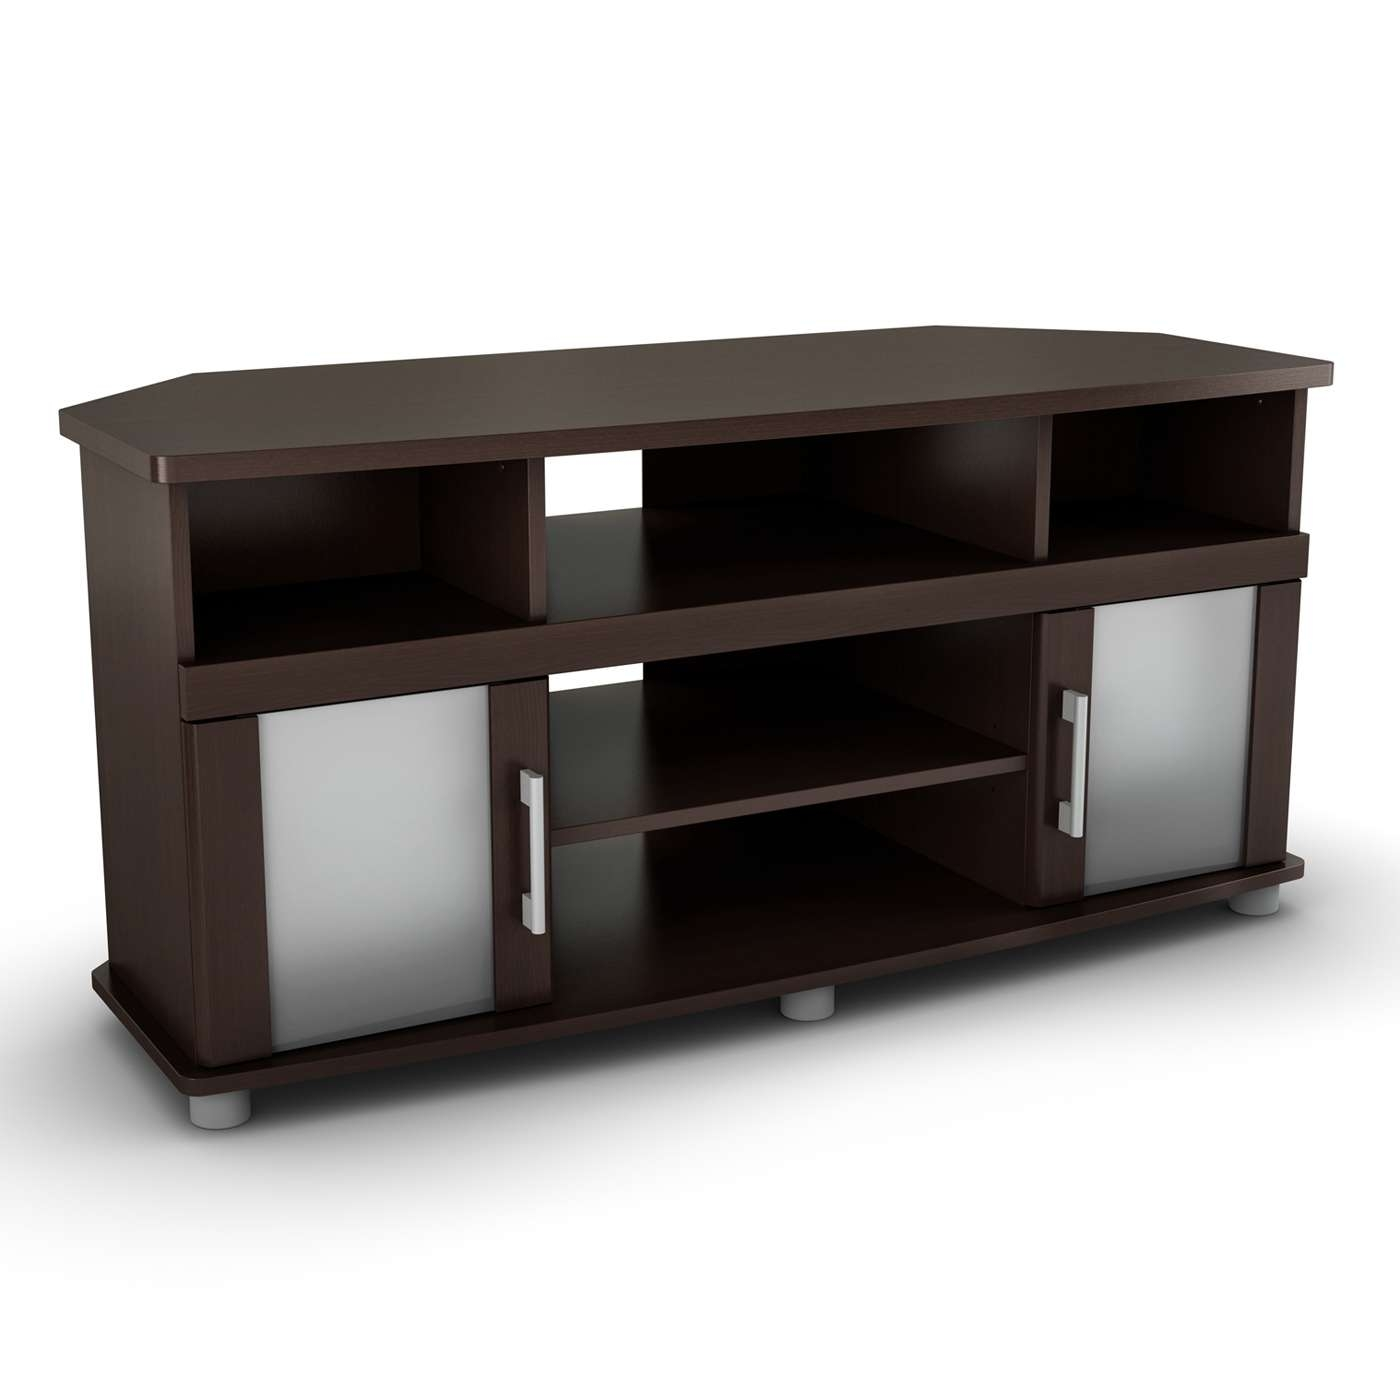 Furnitures Tv Stands Corner Fireplace More Lowes Canada Stand For Intended For Tv Stands For 70 Inch Tvs (View 15 of 20)